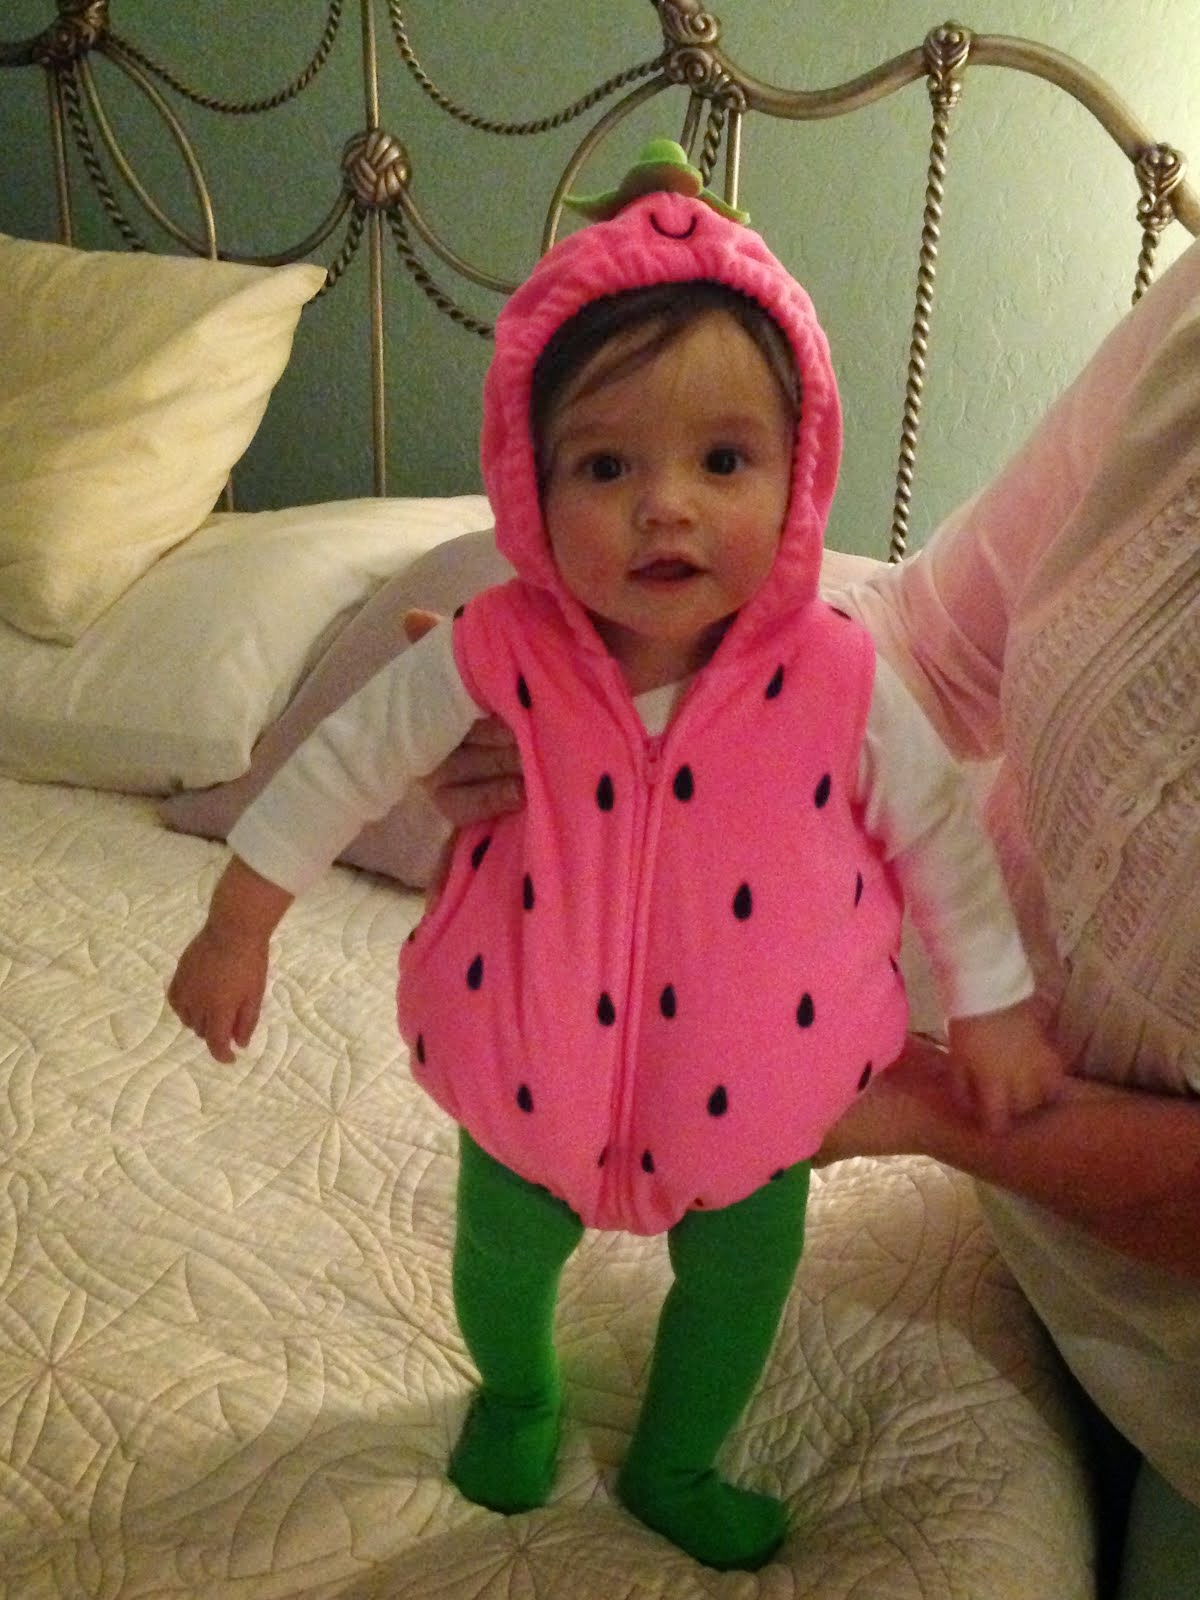 Cutest Strawberry ever!!! - October 2013